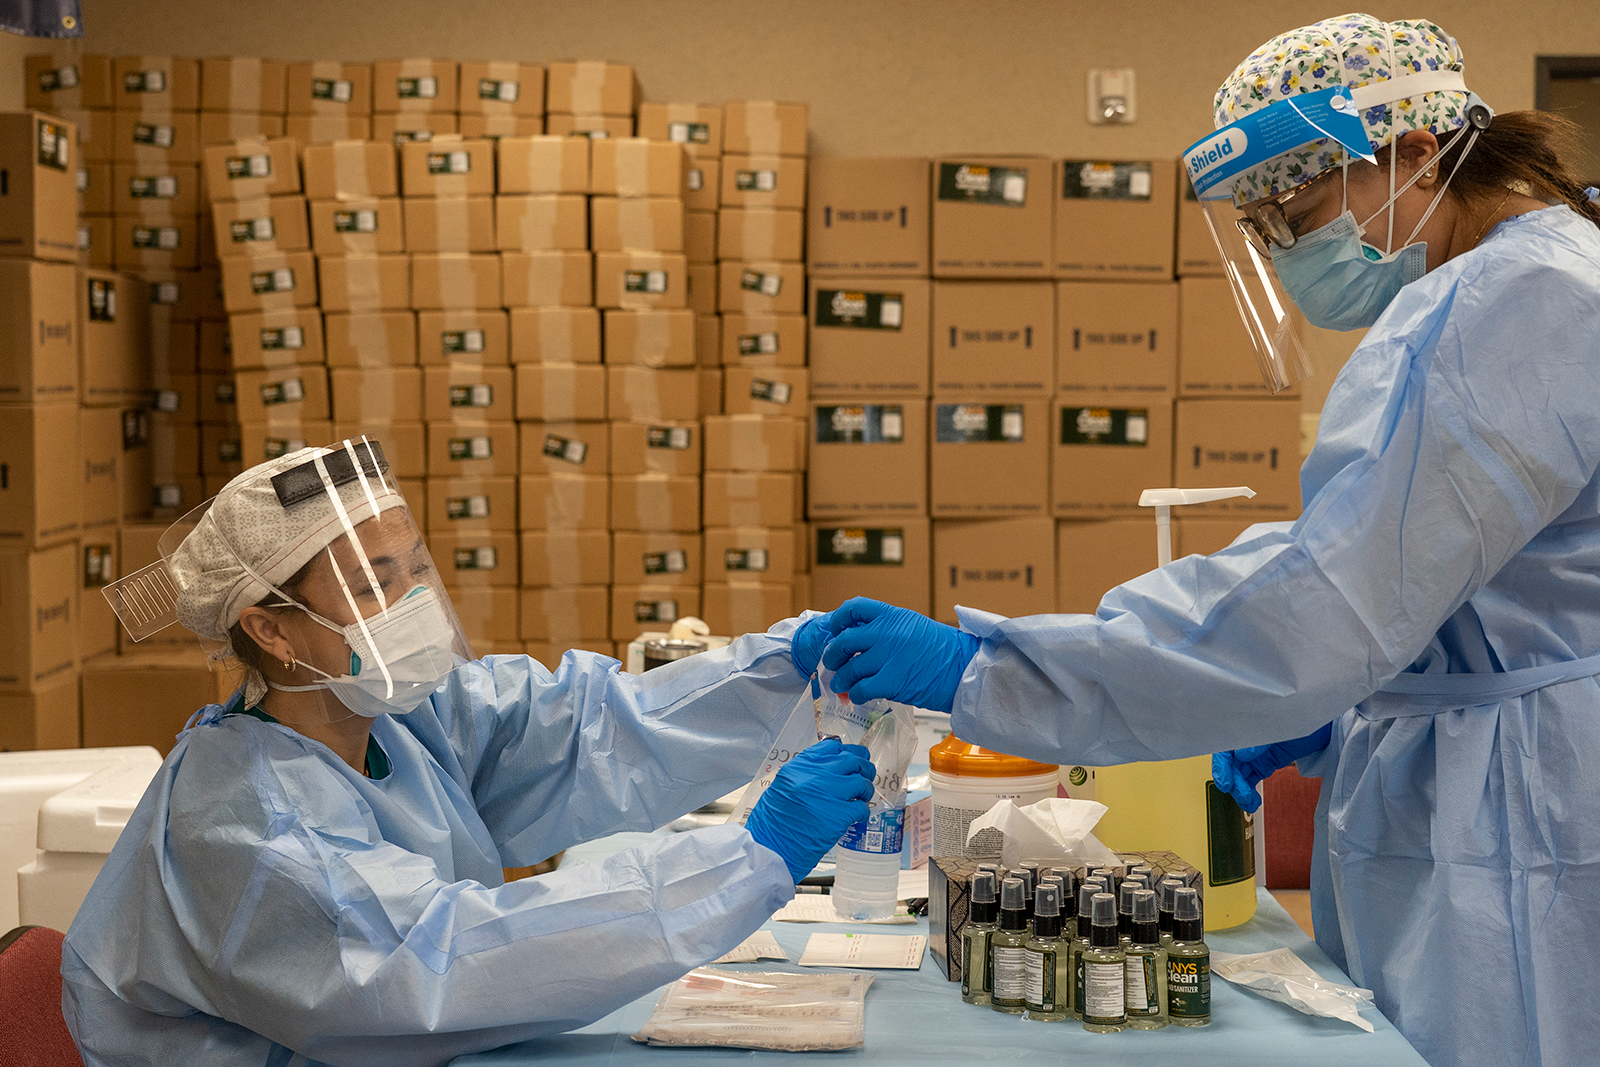 Medical workers from New York wearing personal protective equipments handle test samples at temporary testing site for Covid-19 in Higher Dimensions Church on July 17, in Houston.